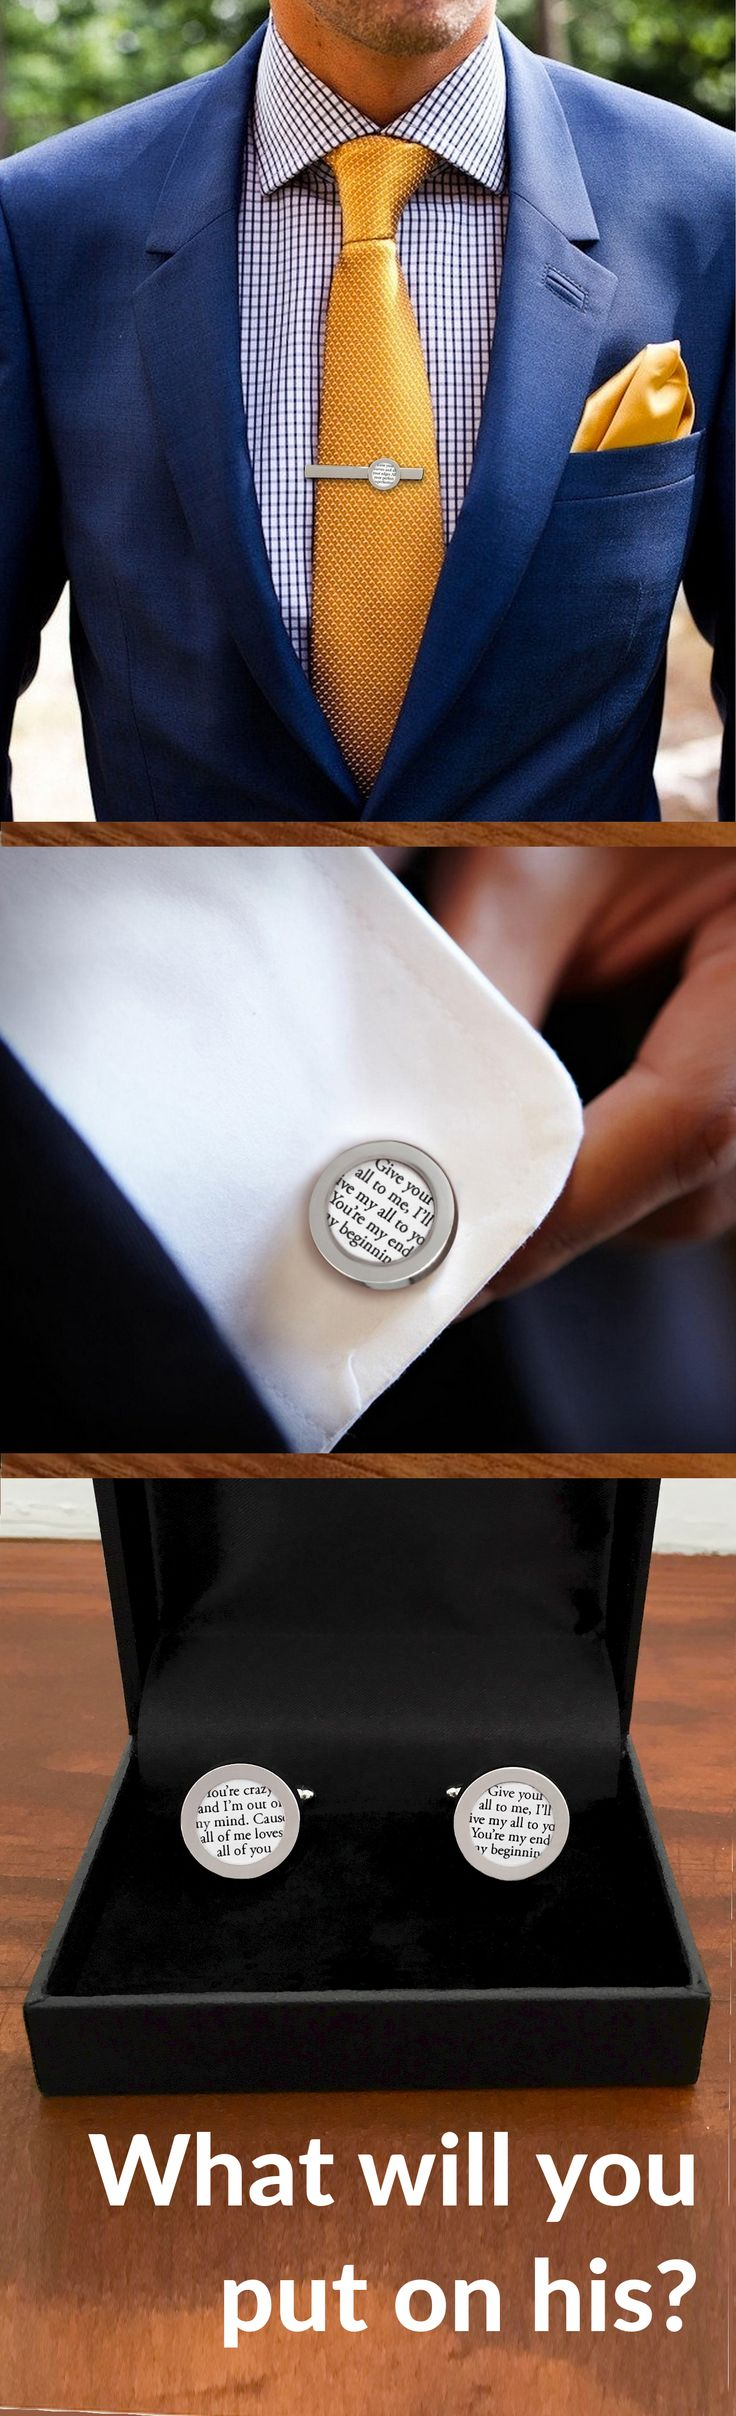 What a timeless one year anniversary gift for him- Custom cufflinks & tie clip with your wedding vows or song. Paper Anniversary® by Anna V will work with you to create this sentimental gift that your husband will keep forever. Design his gift today and get FREE customization!